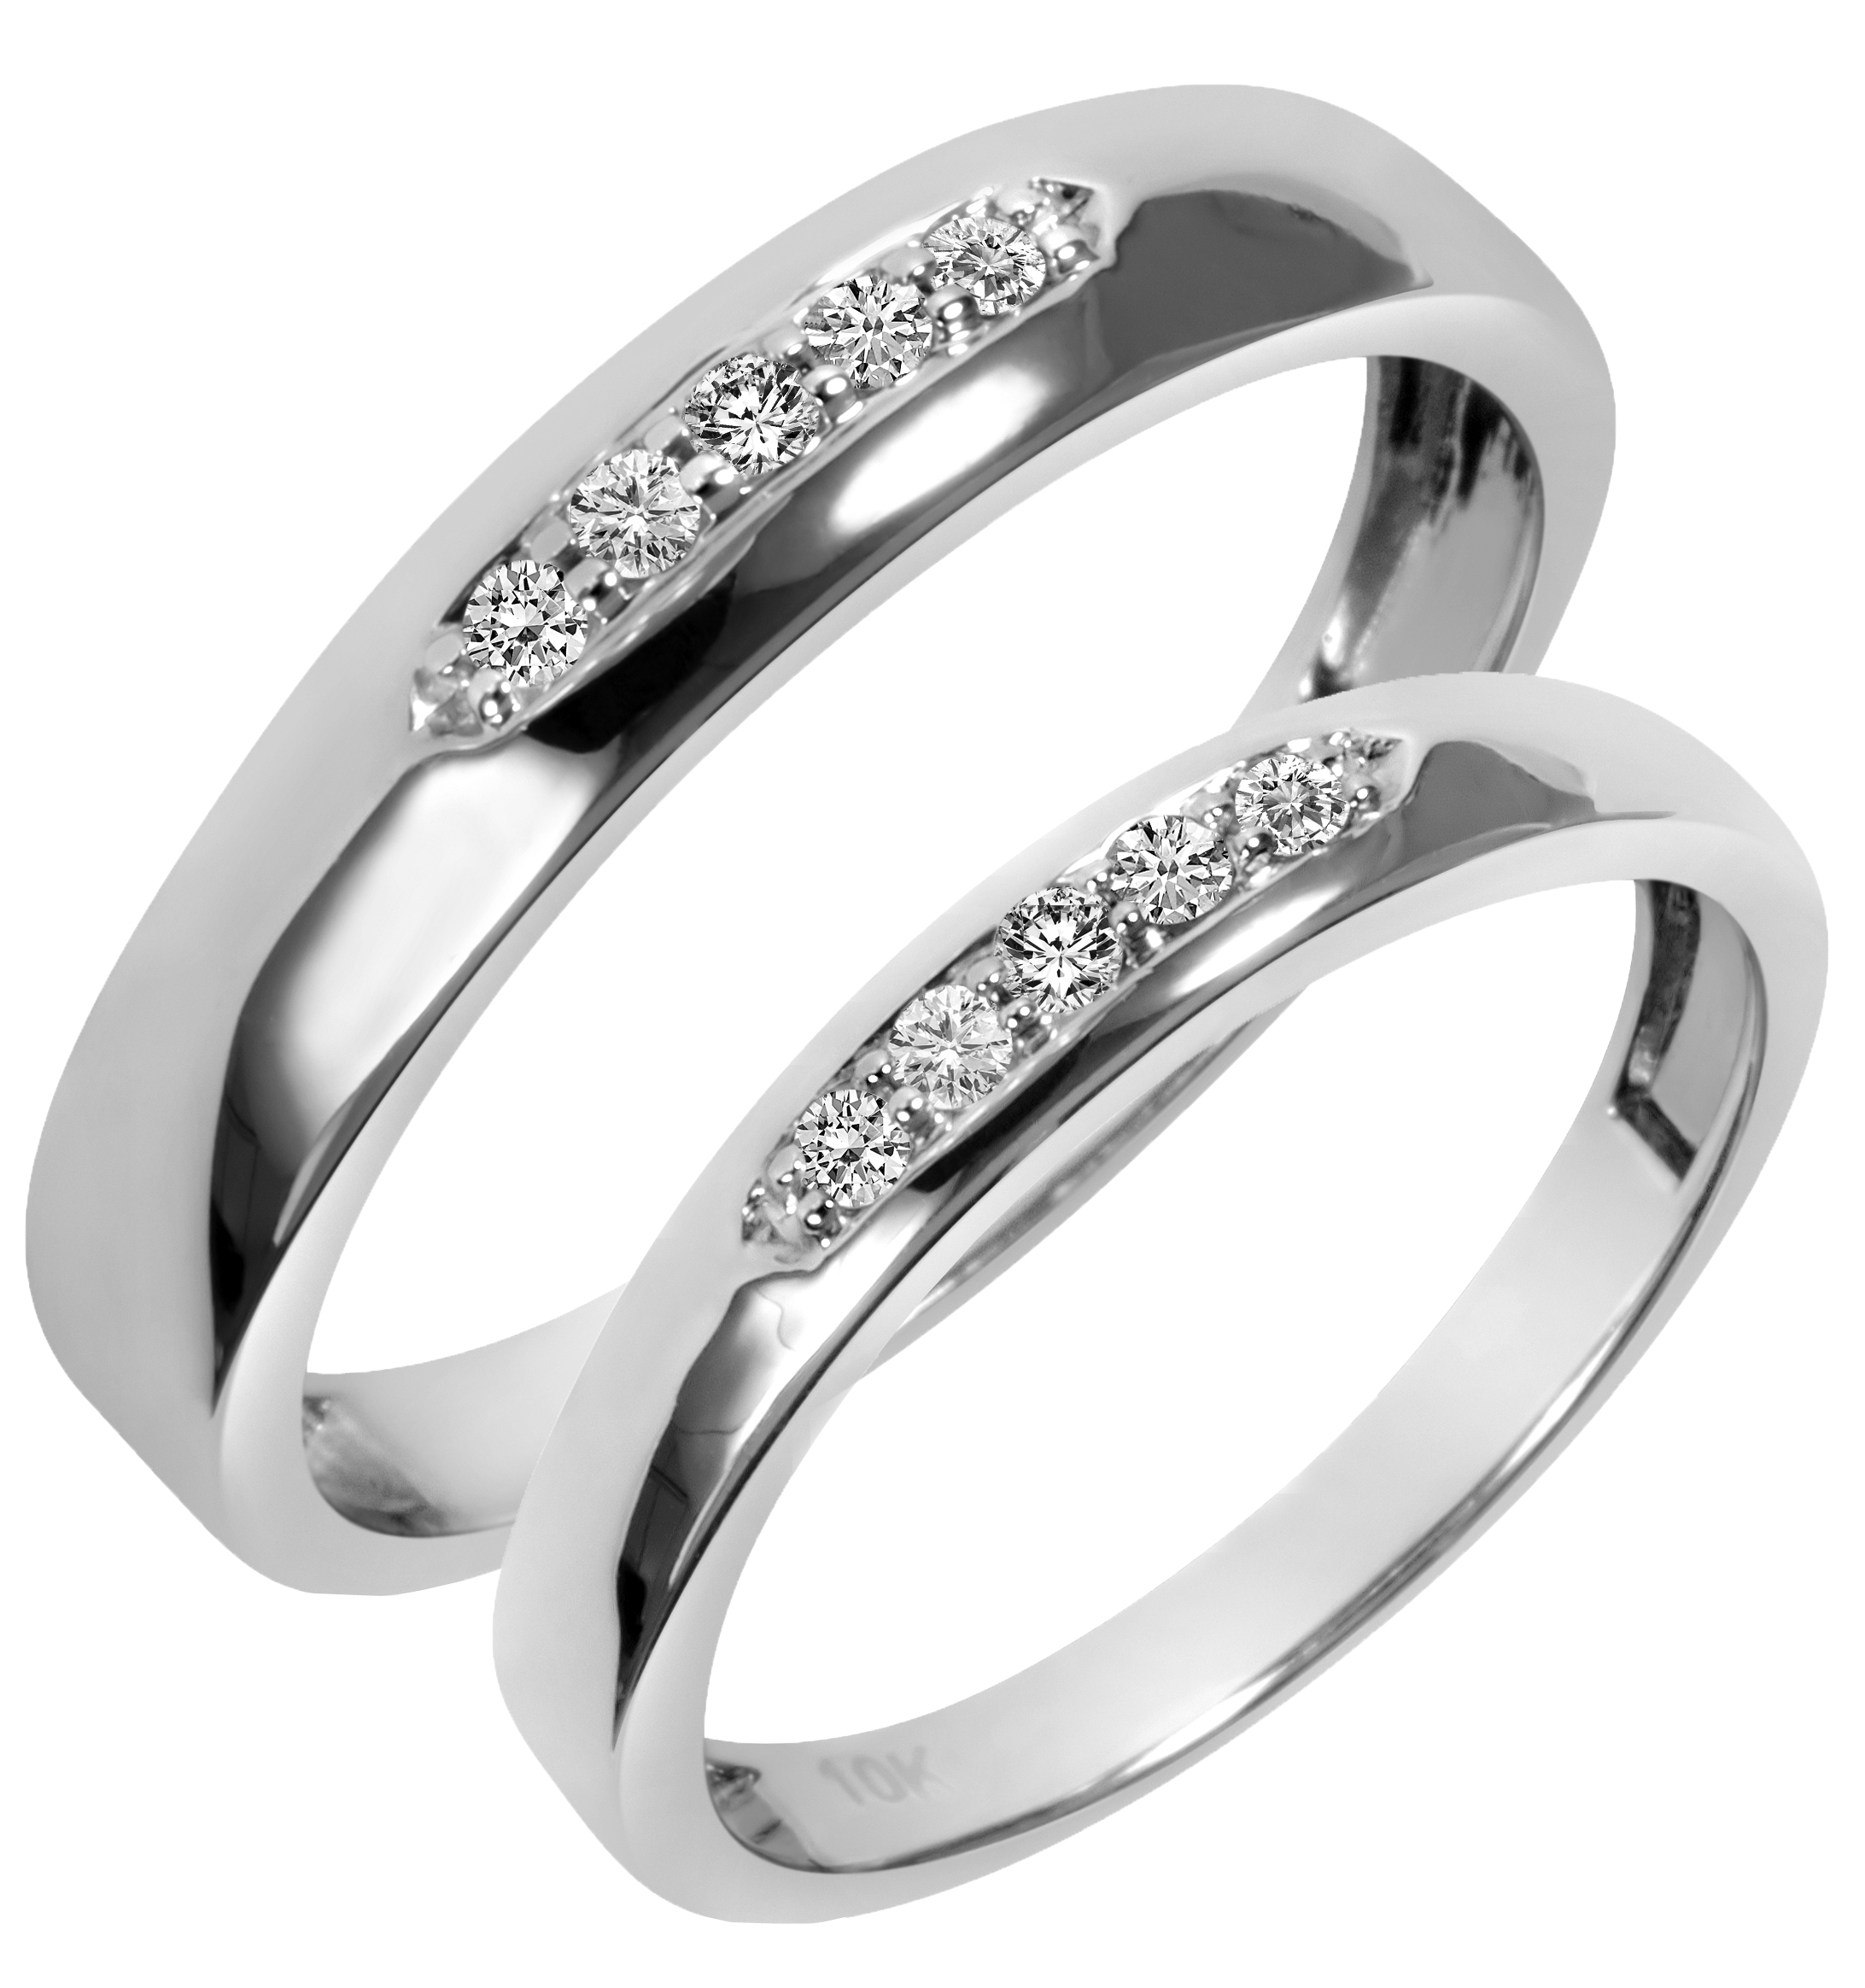 white gold wedding band Details about diamond 20 carat 3 ring 10K white gold wedding band set cross Christian bridal